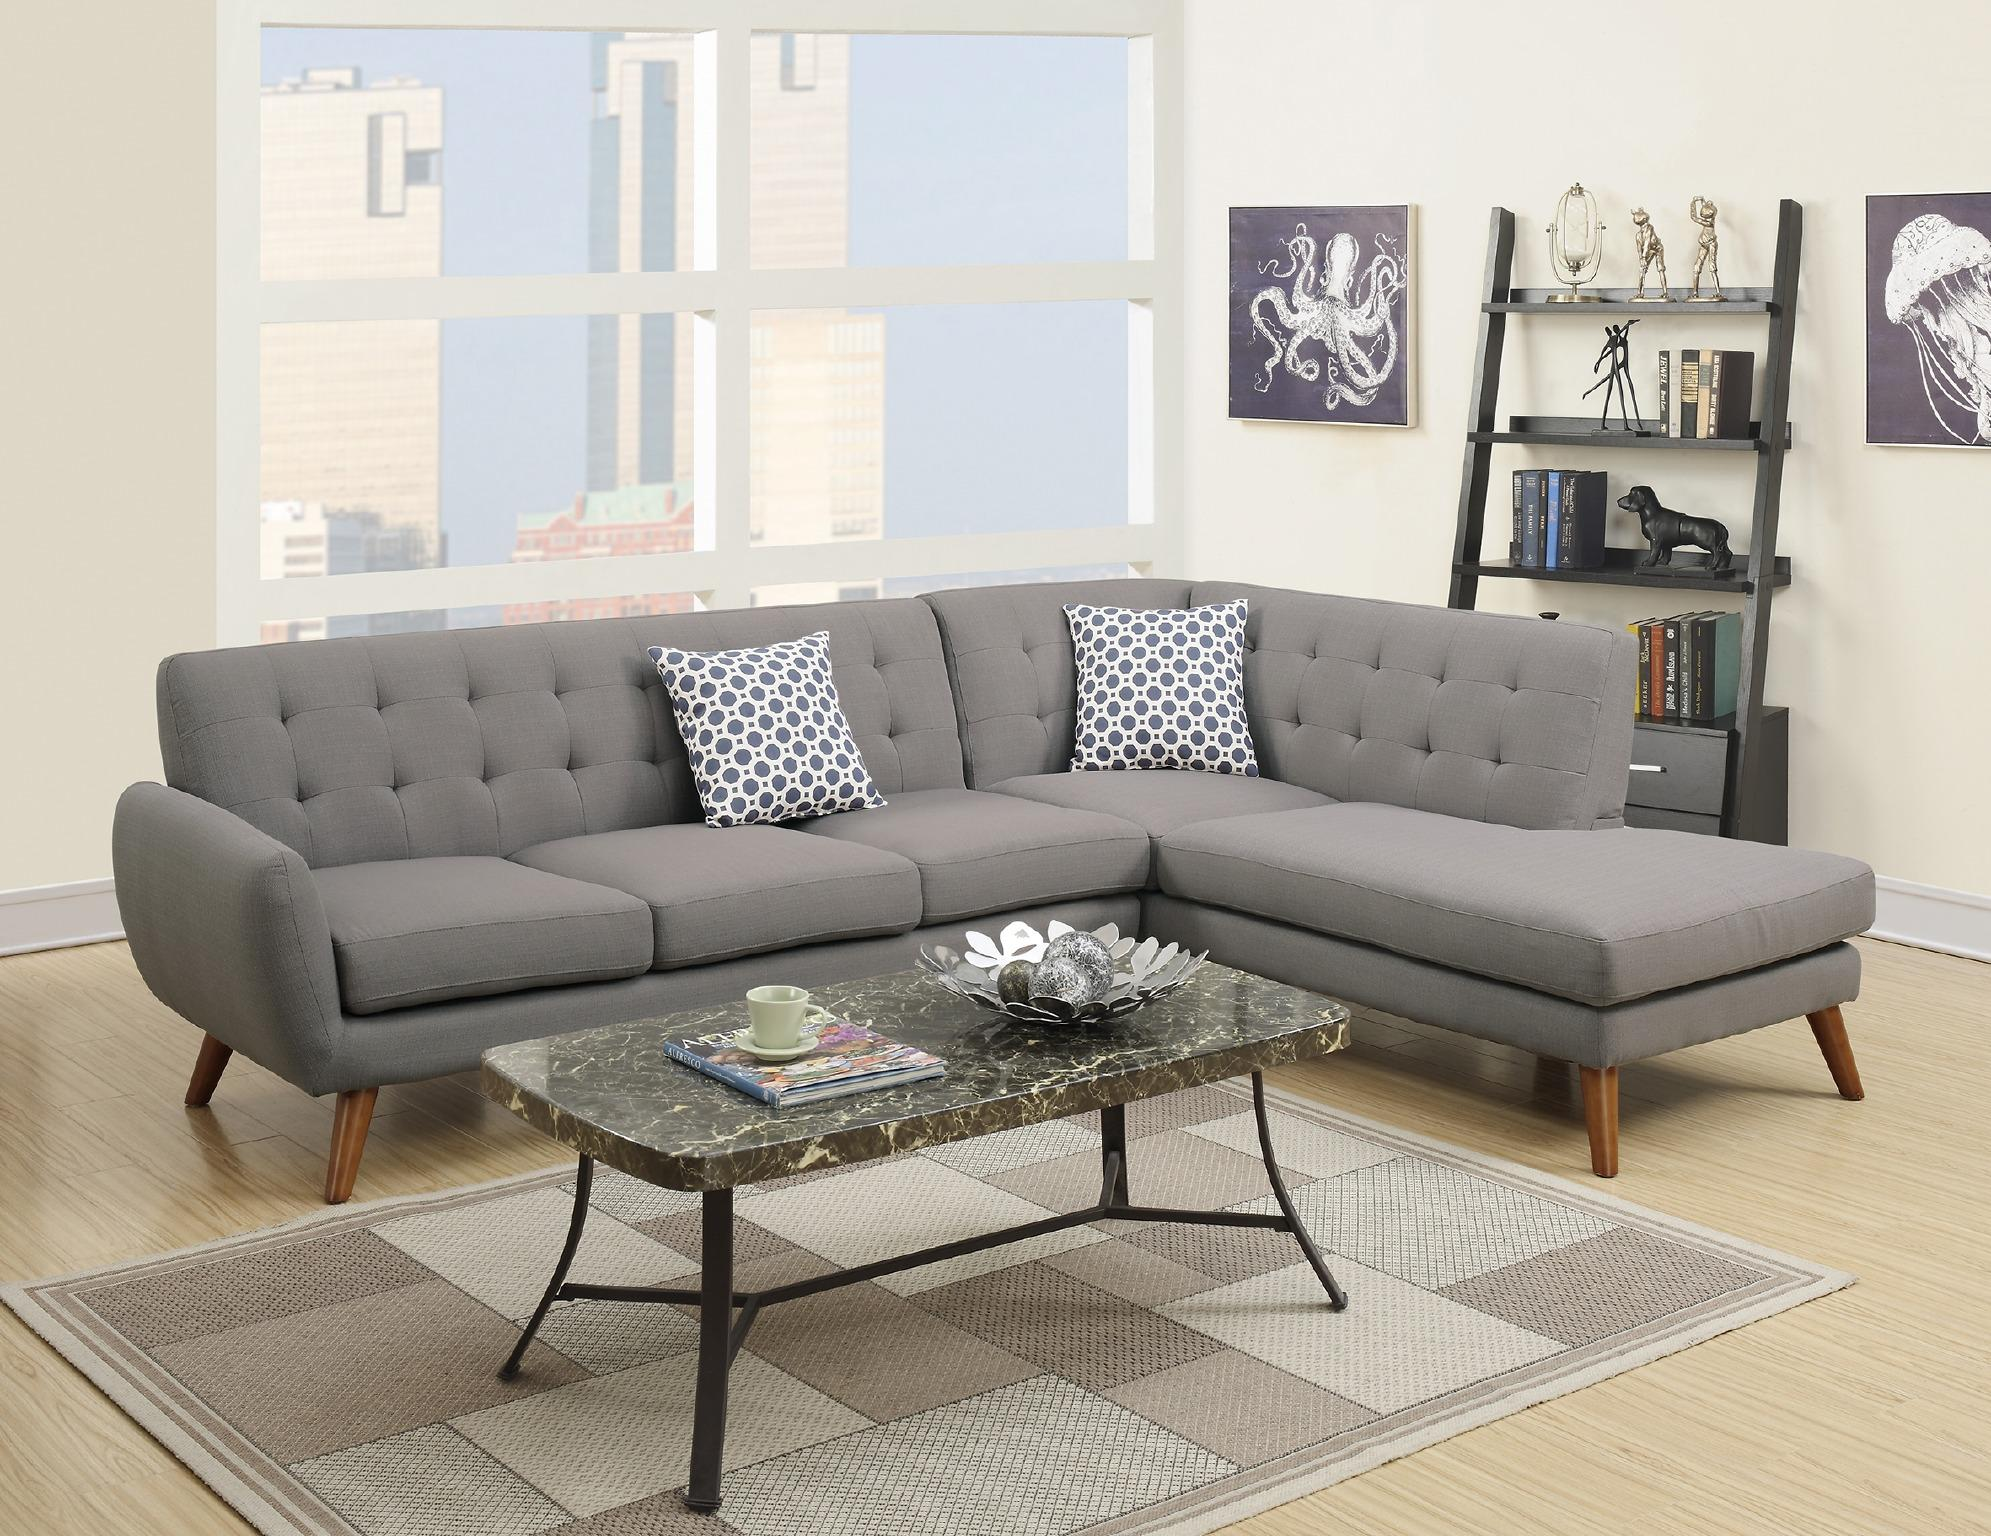 bedgrey rooms decoration of concepts design modern leather sofa full go sectionala for couch astounding sale size sofas grobania amazing with gray model to grey salegray s sectional blue white best greyas